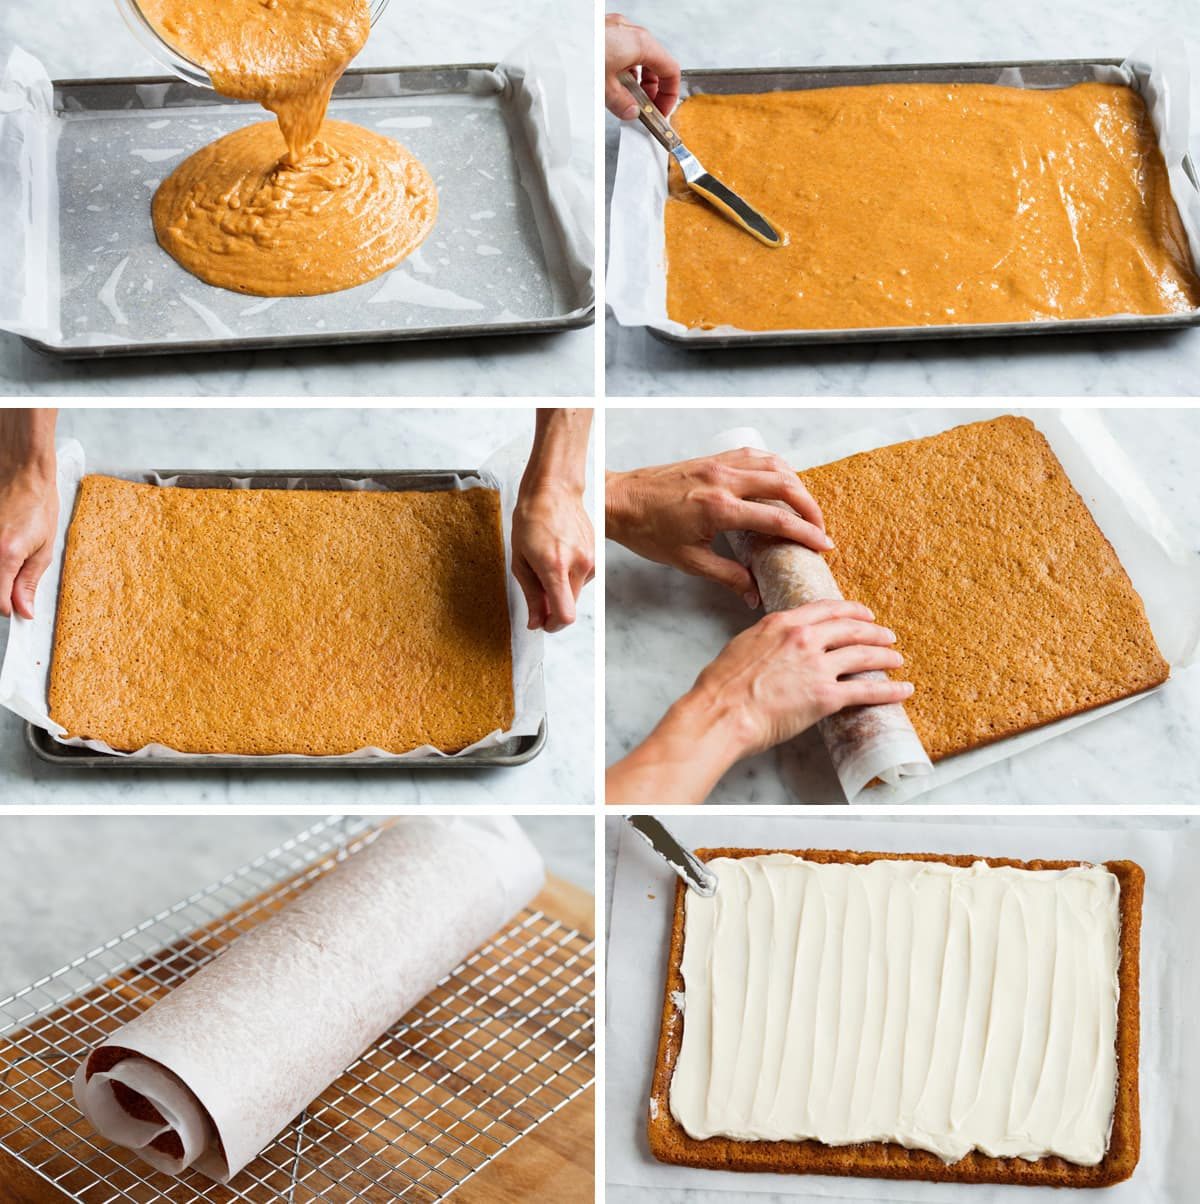 Showing how to prep a pumpkin roll in a jelly roll pan for baking. Then showing how to roll and frost it.